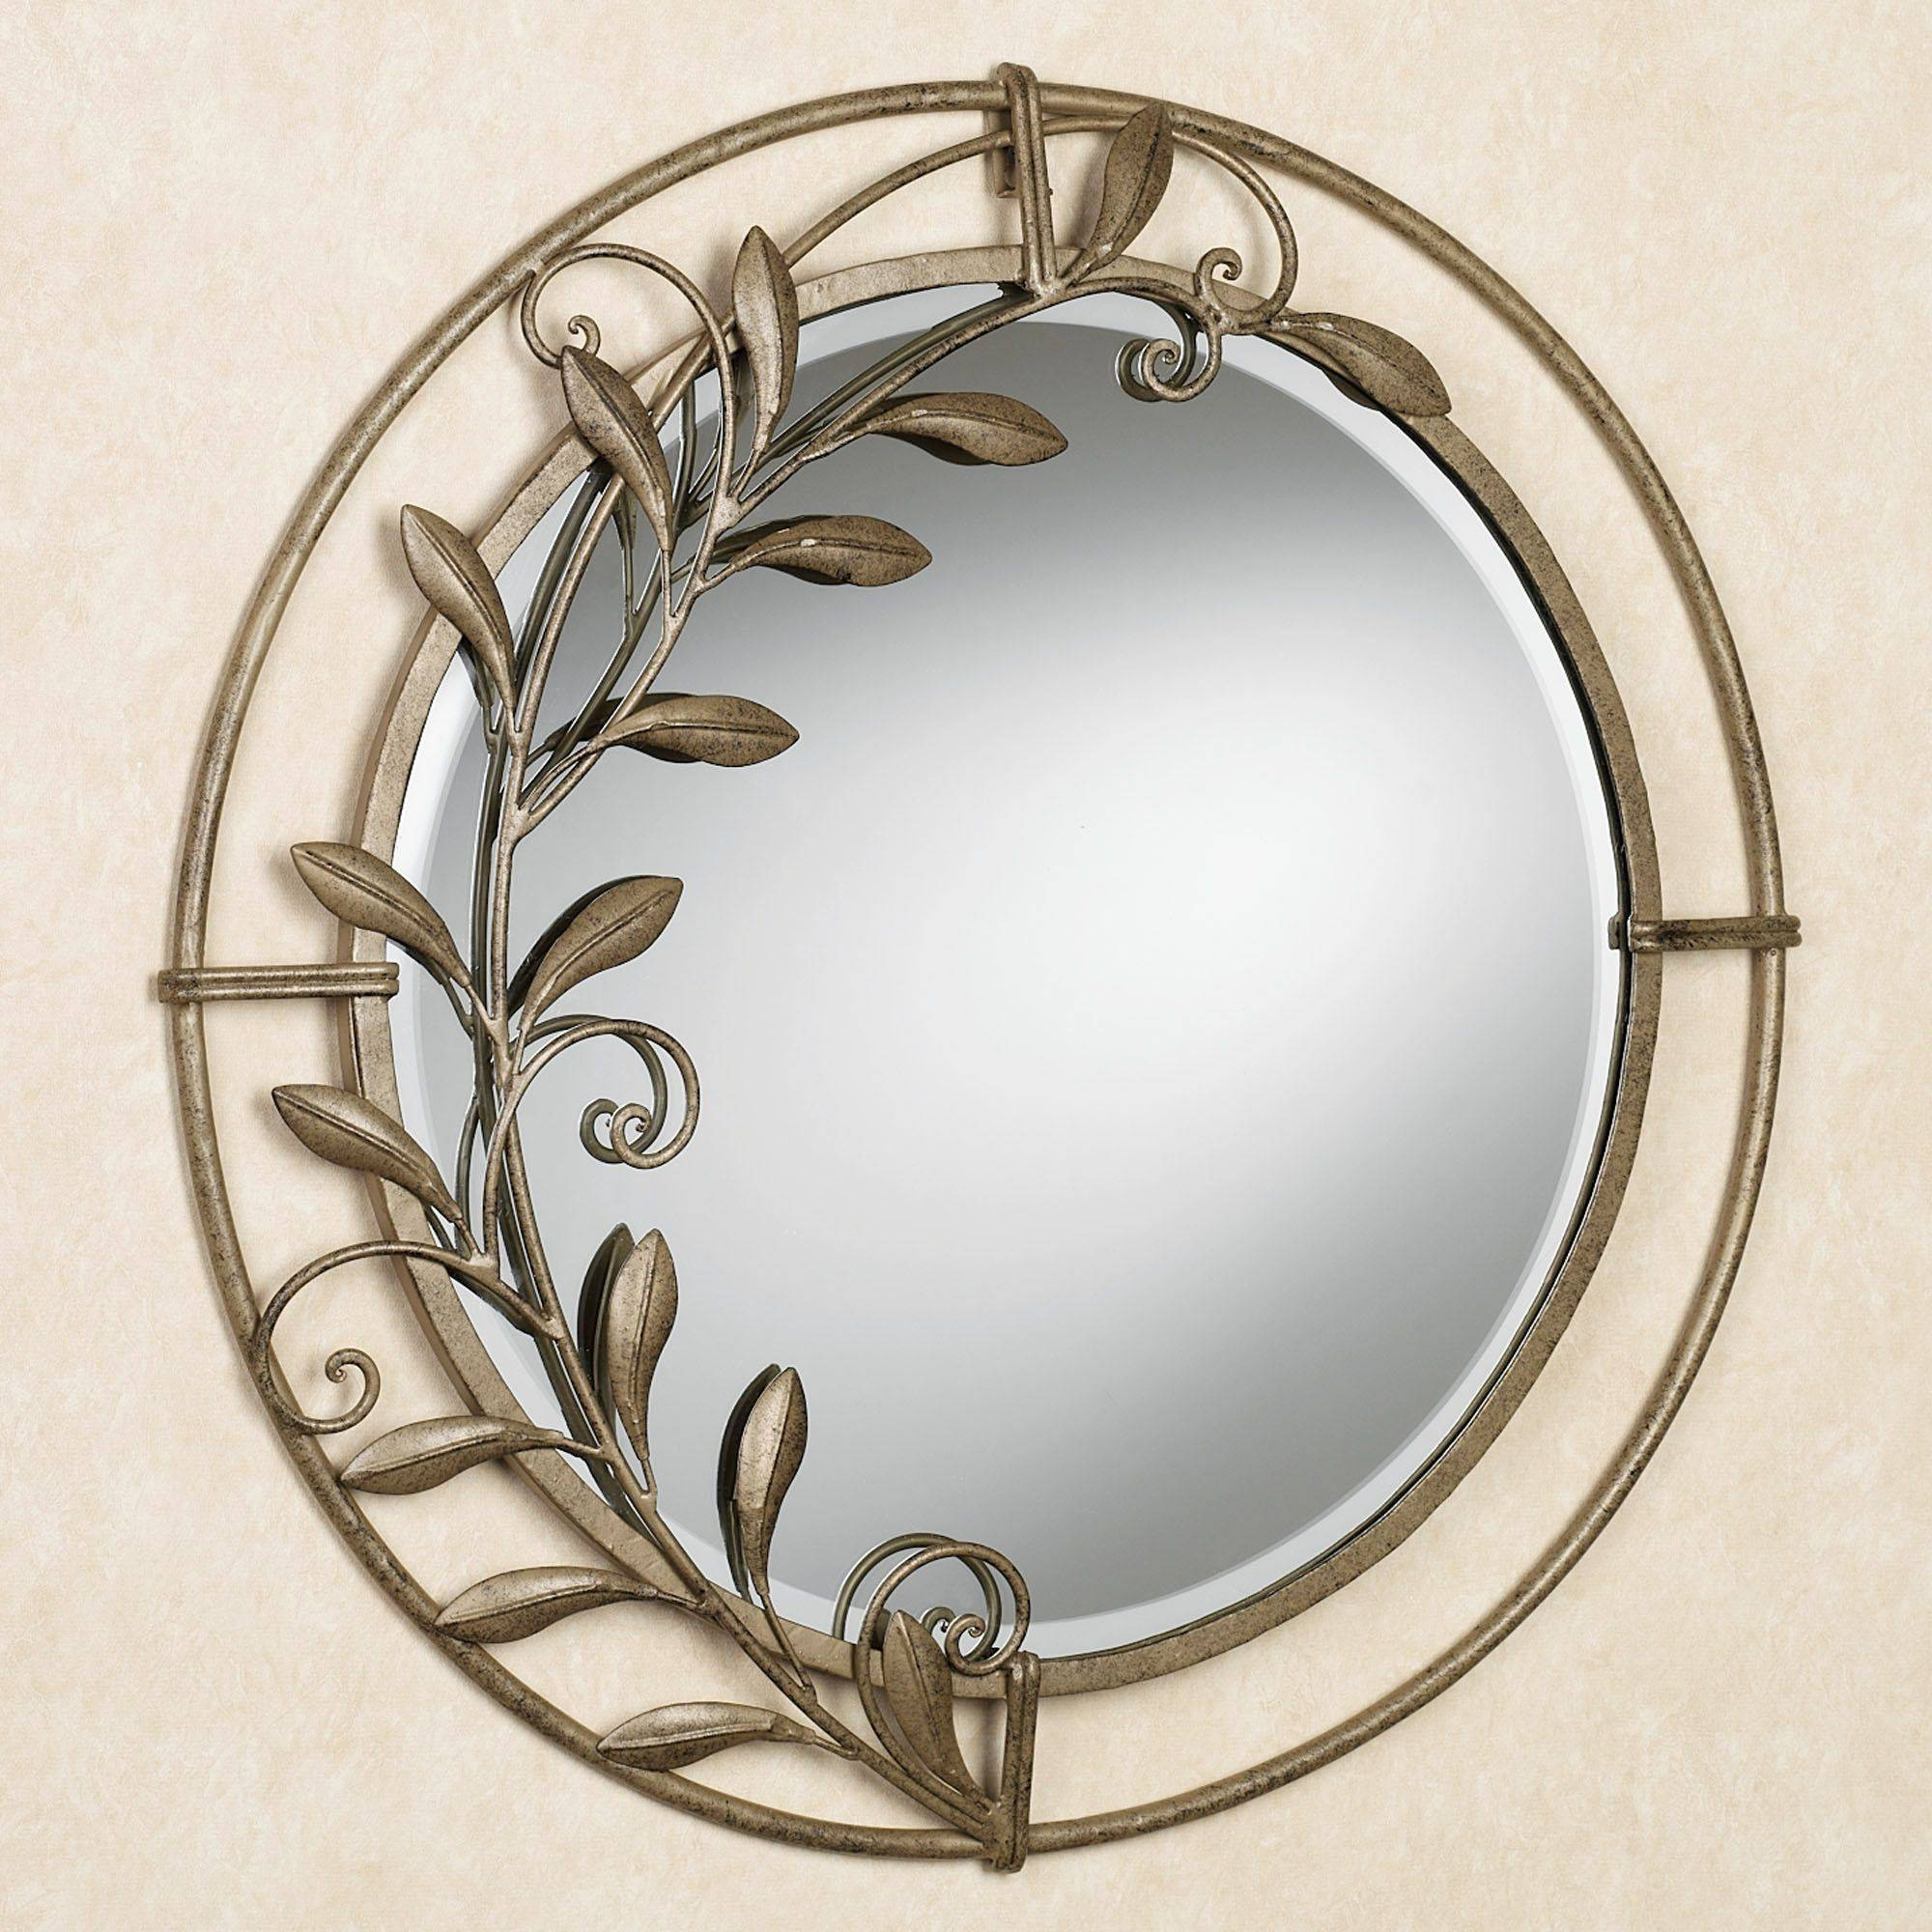 Galeazzo Antique Gold Round Metal Wall Mirror inside Gold Round Mirrors (Image 8 of 25)